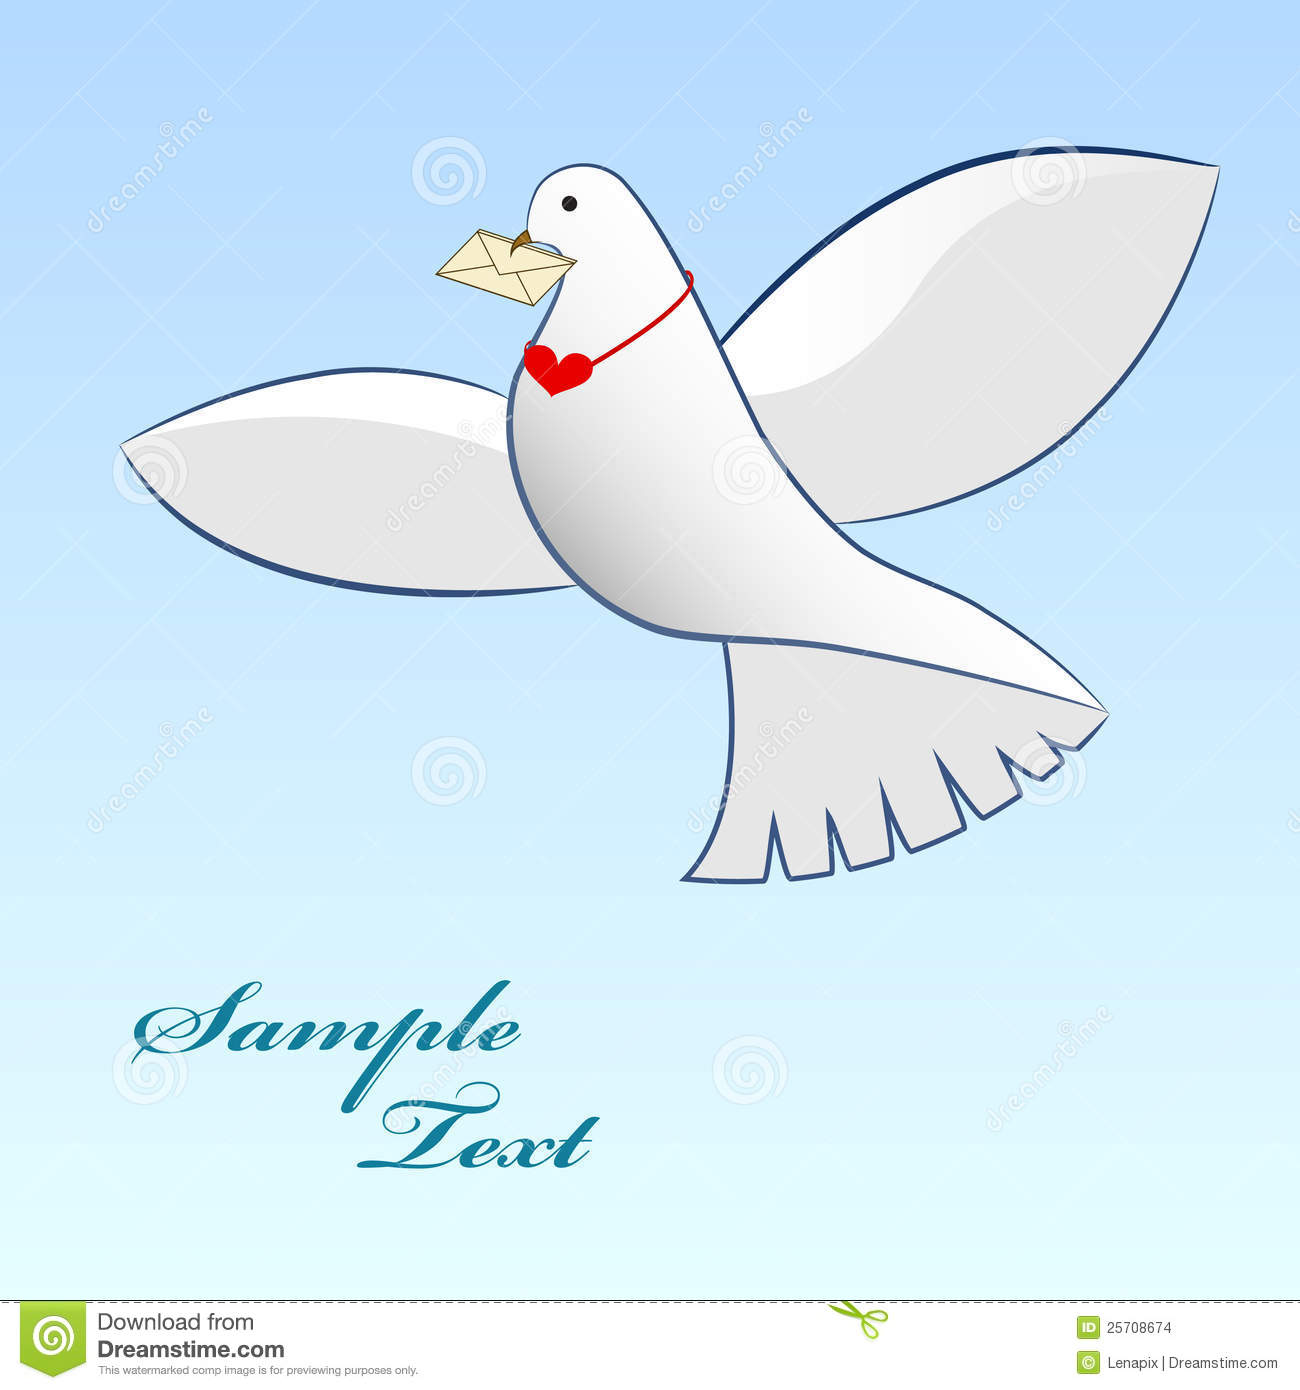 Dove Carrying Love Message  Stock Images   Image  25708674